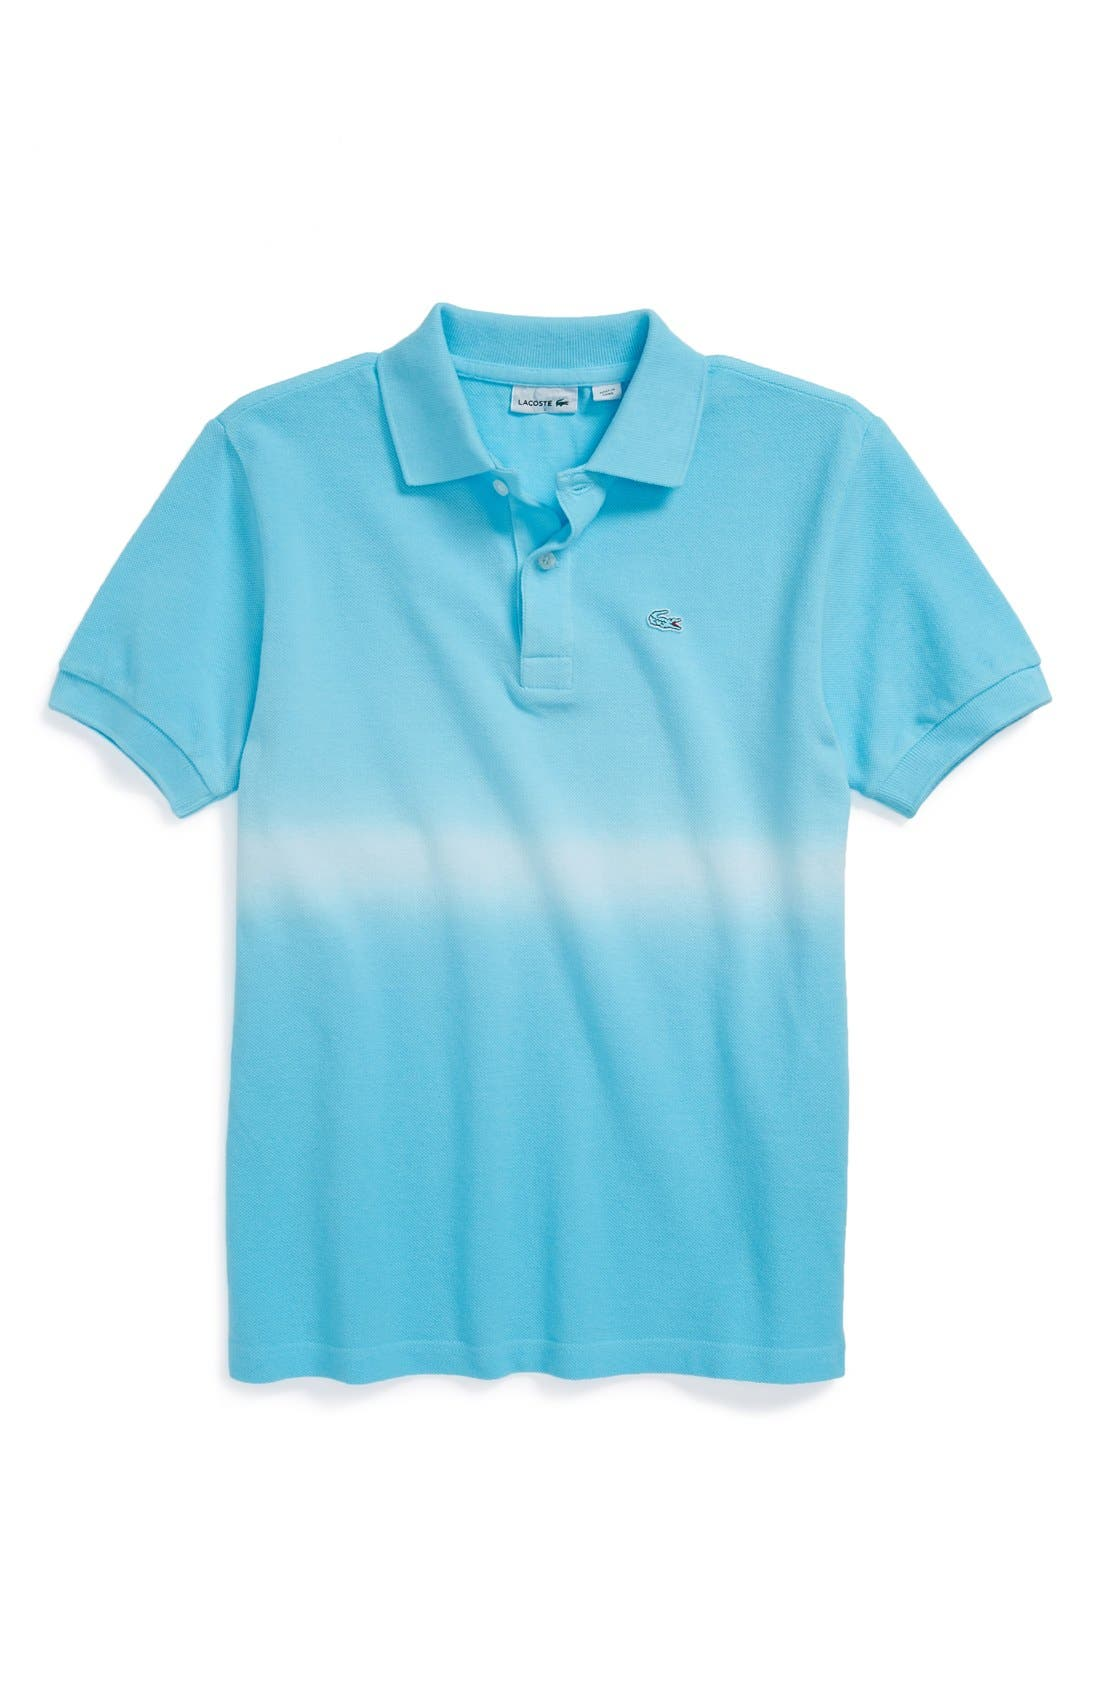 Main Image - Lacoste Dip Dye Cotton Piqué Polo (Little Boys & Big Boys)